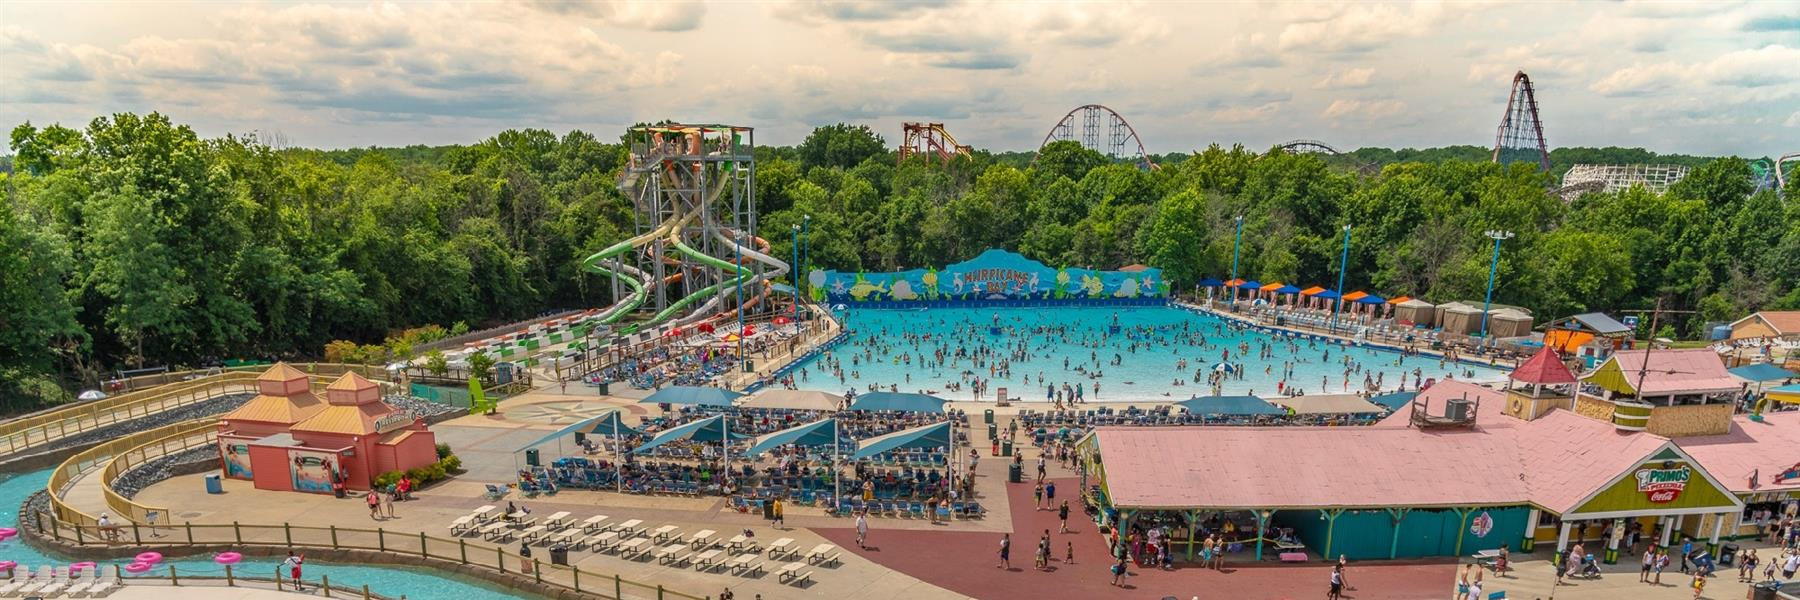 Six Flags Washington DC / Baltimore  in Bowie, Maryland